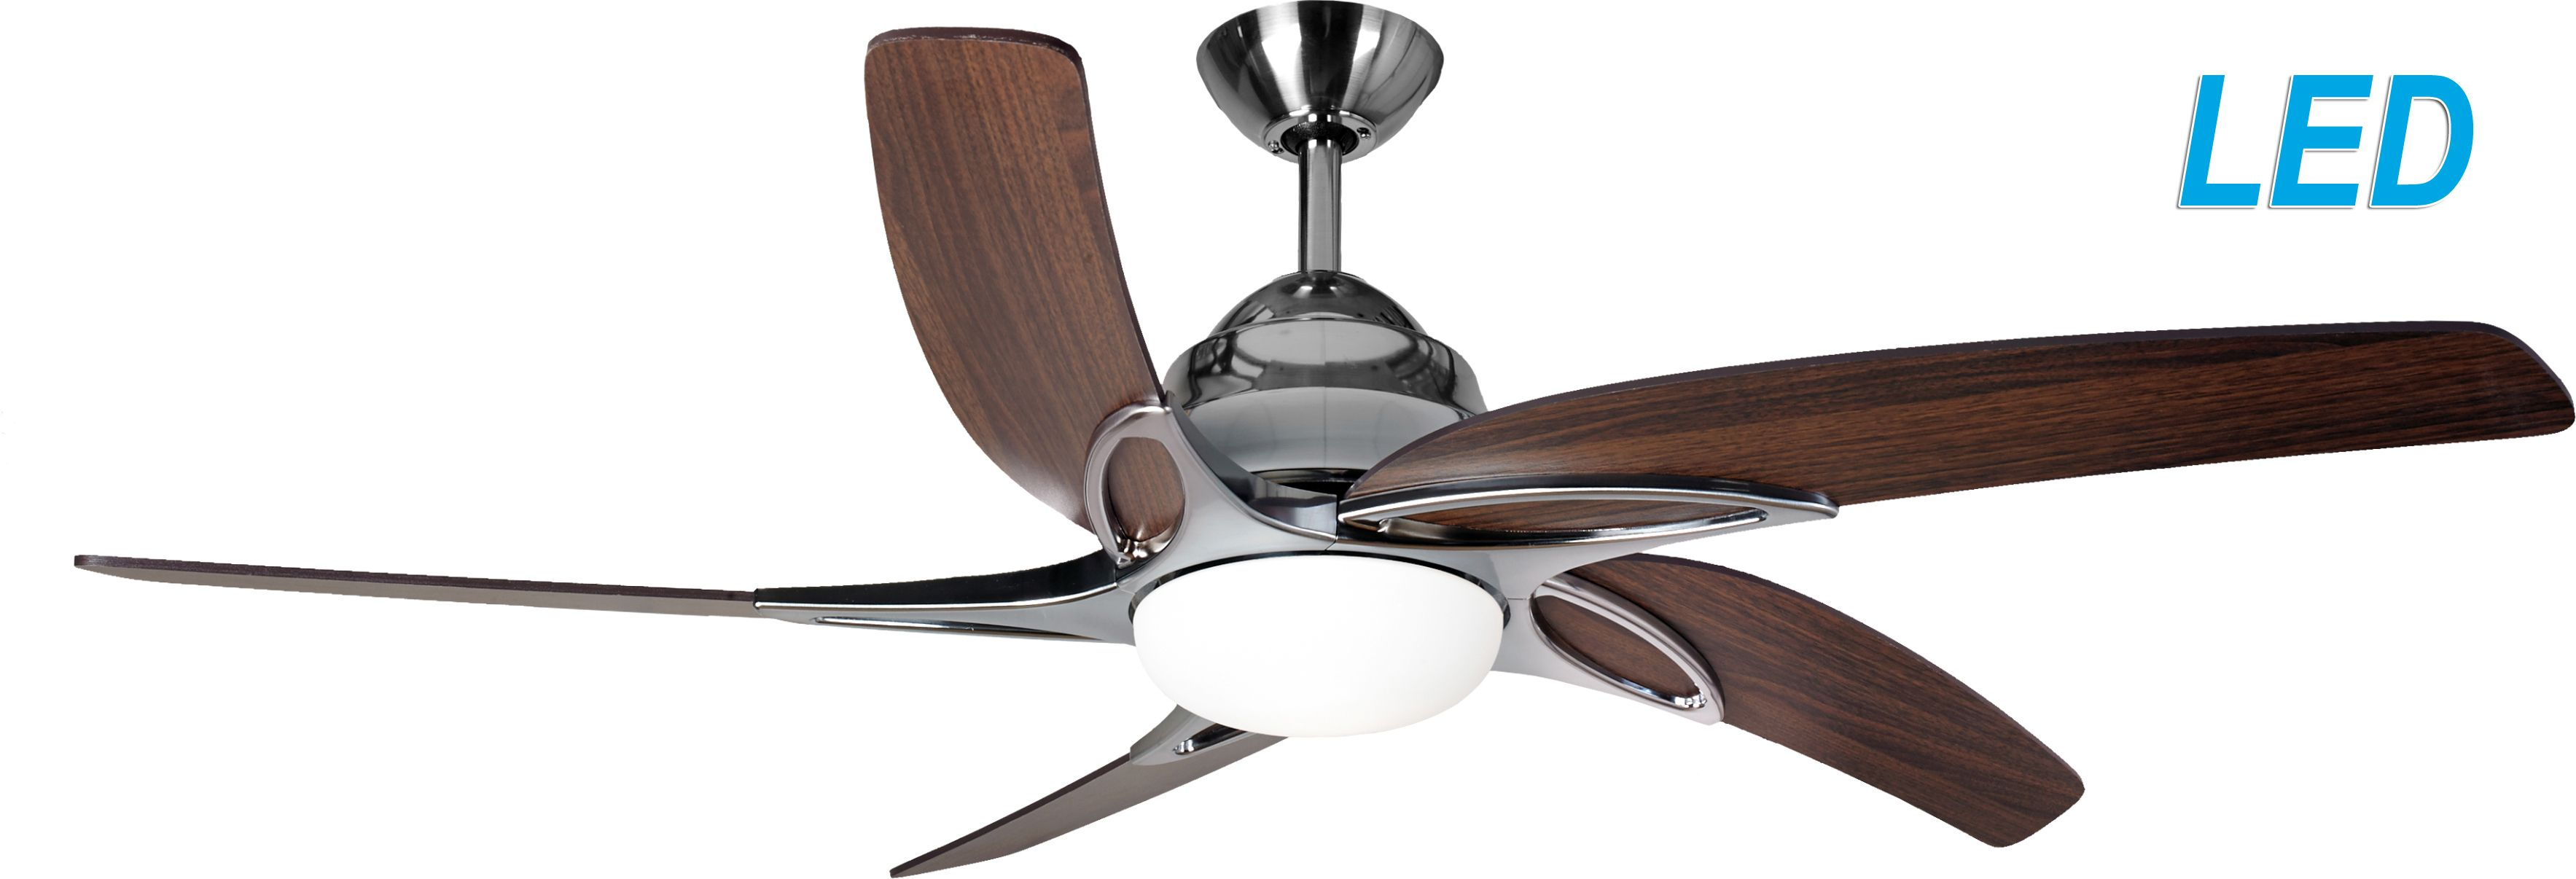 bay hampton ceilings everstar of fans ceiling p fan s inch ebay ii brushed nickel picture